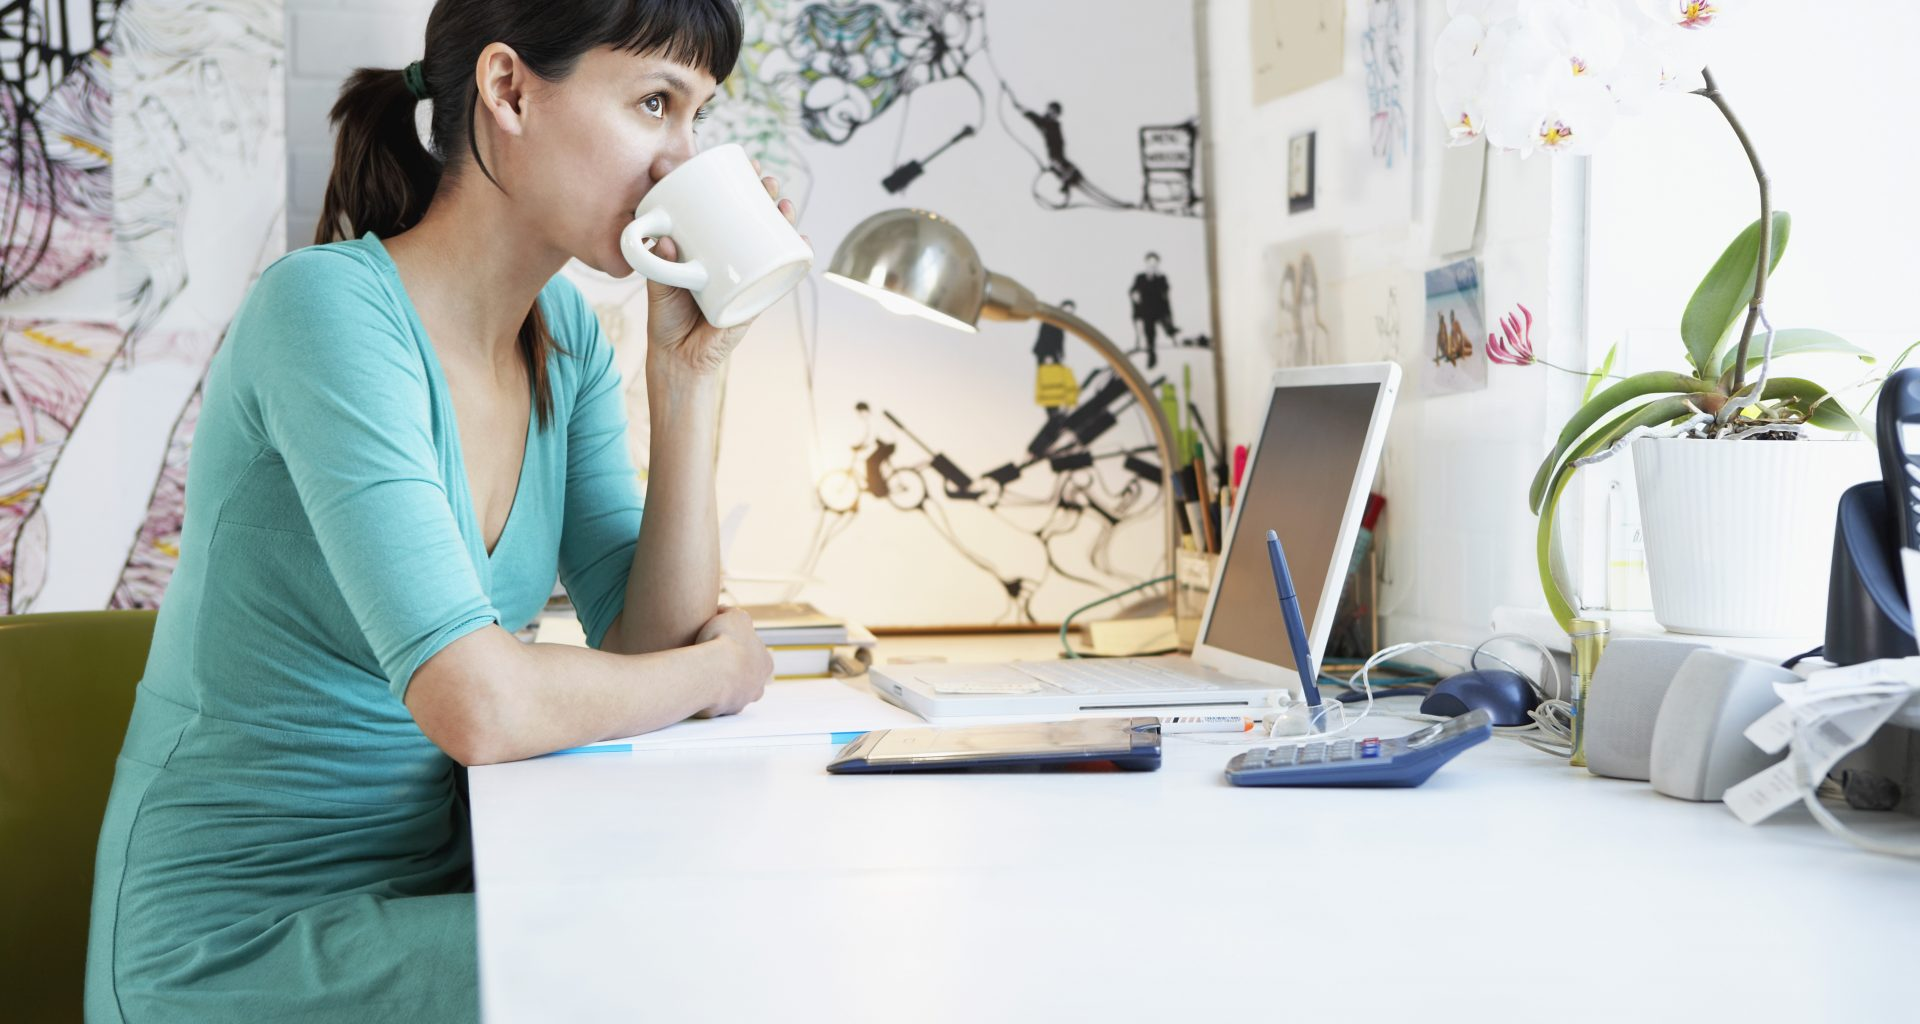 Tips for Working from Home Featured Image